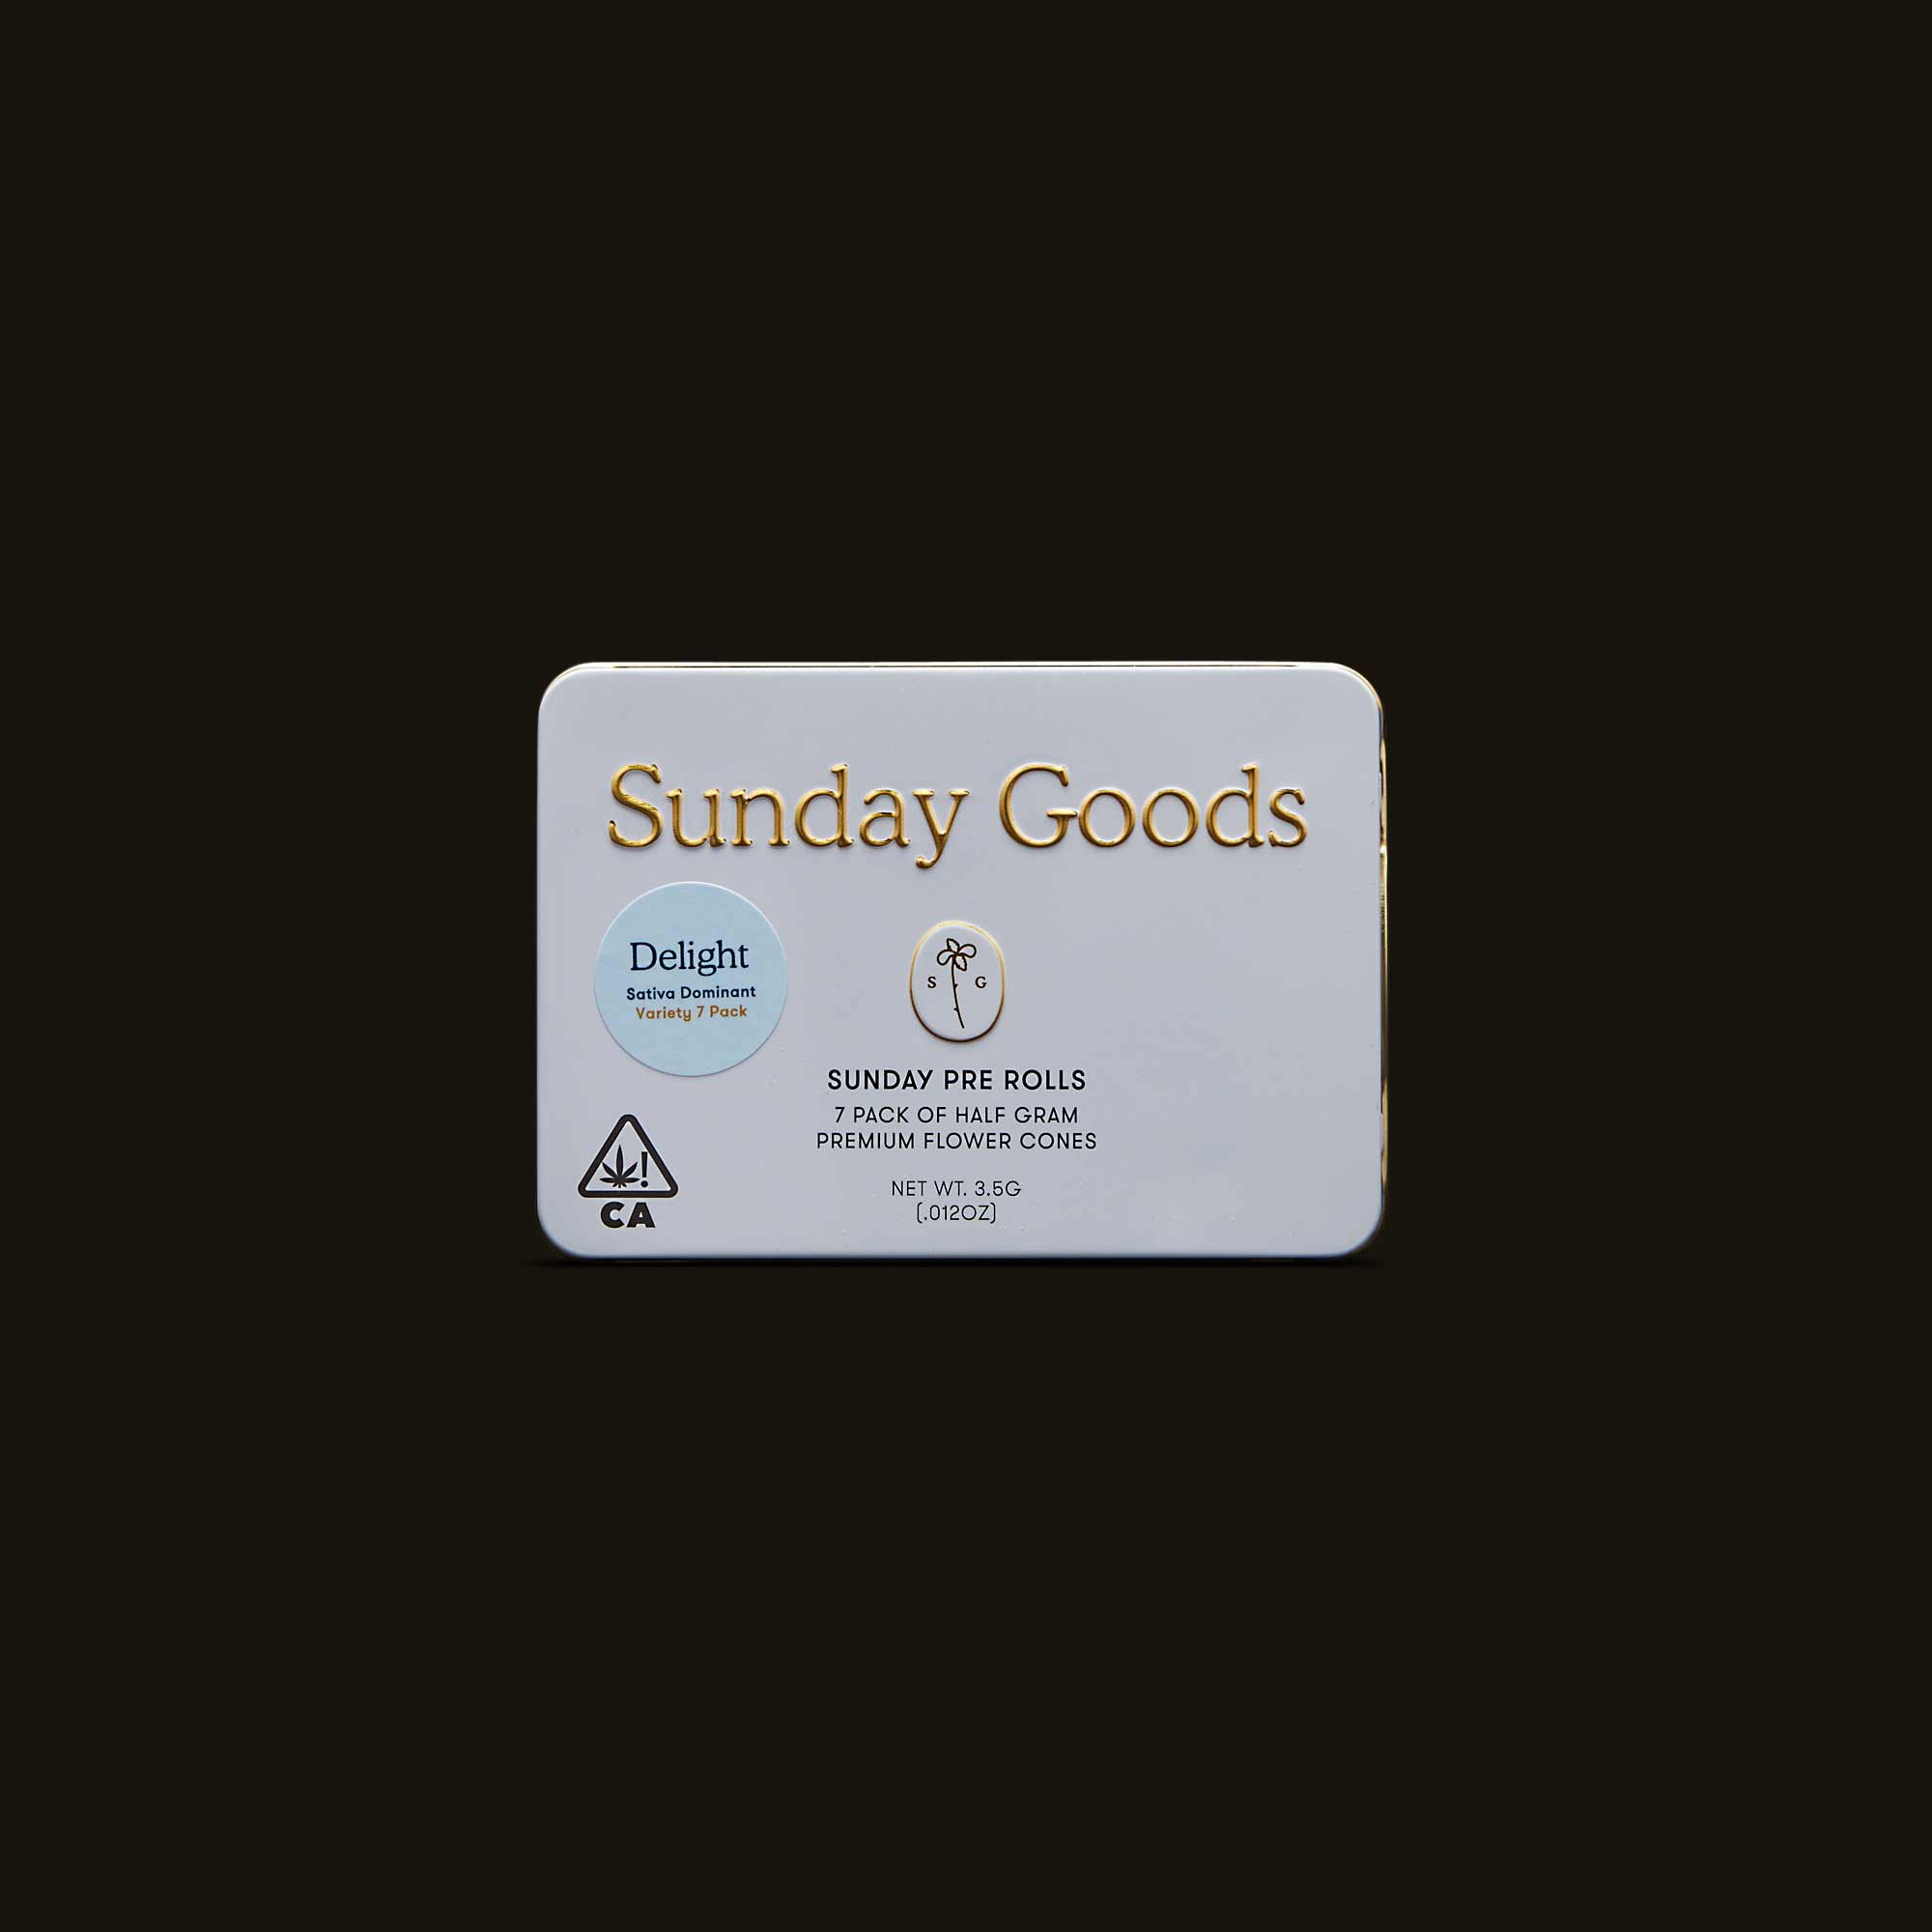 Sunday Goods Delight Pack